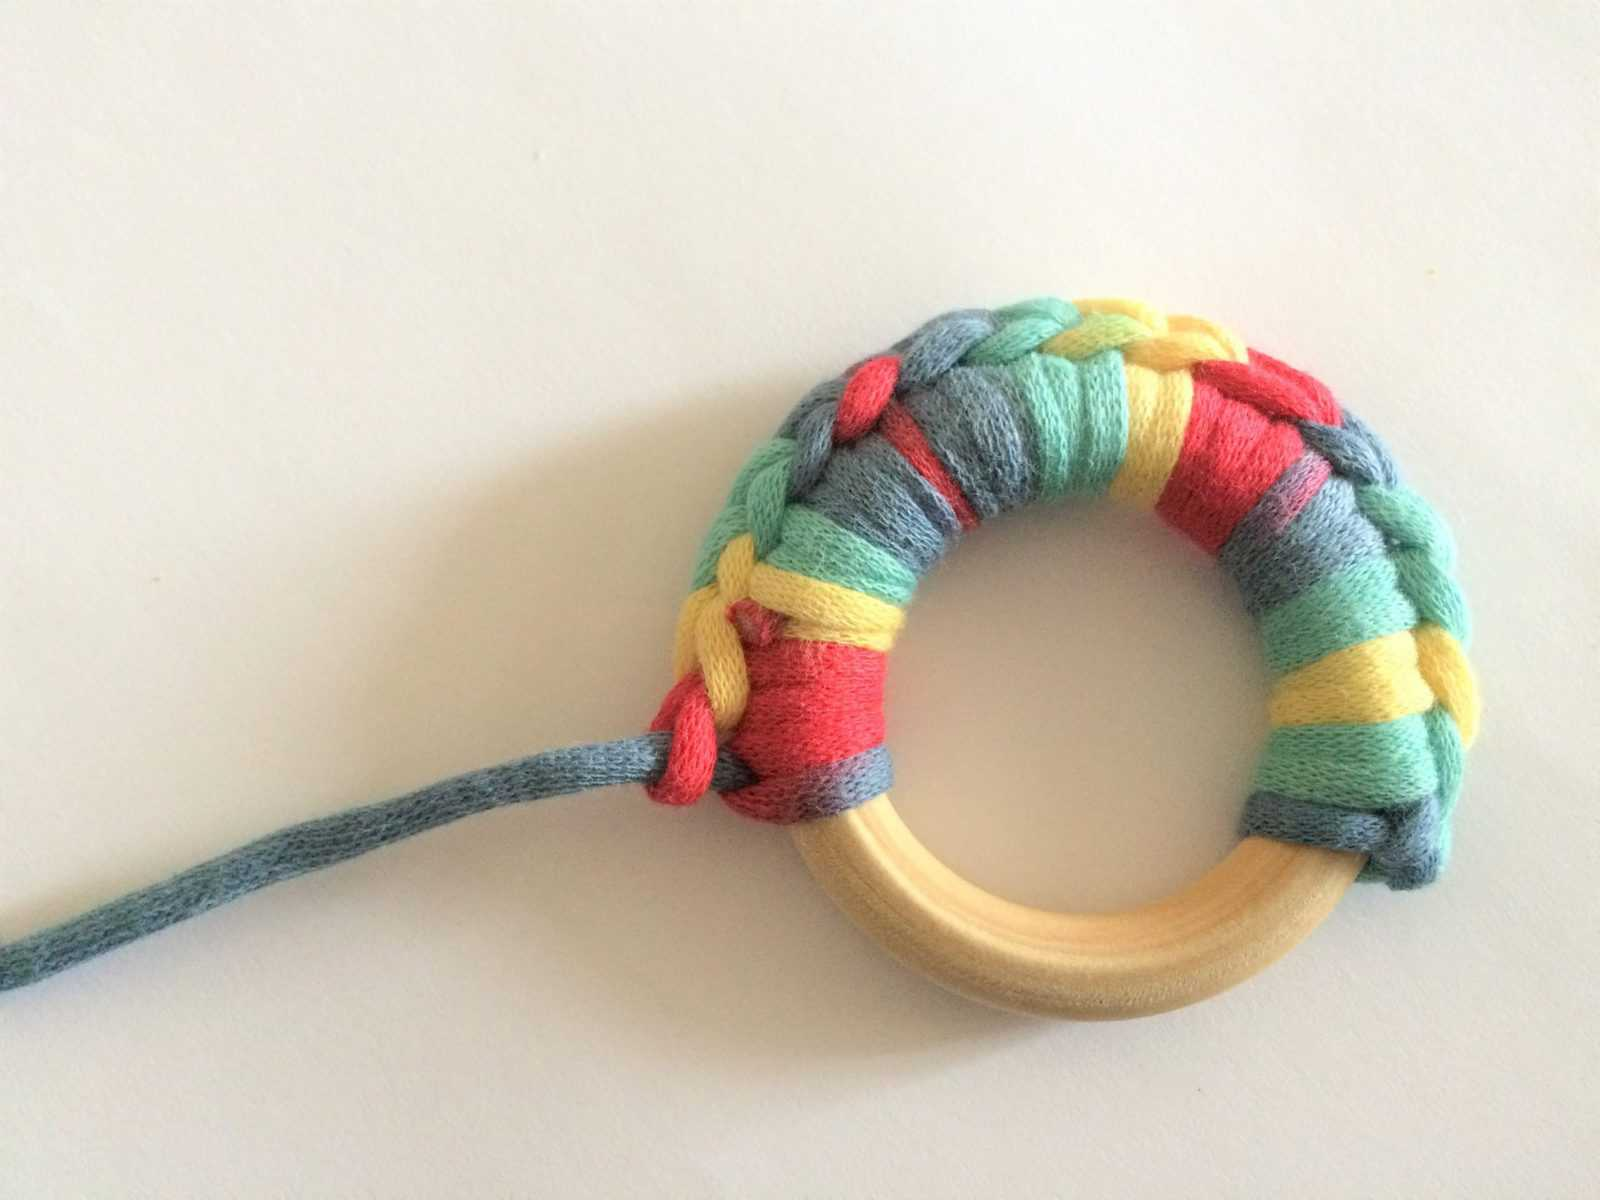 Crochet teether will colorful stitches around it.